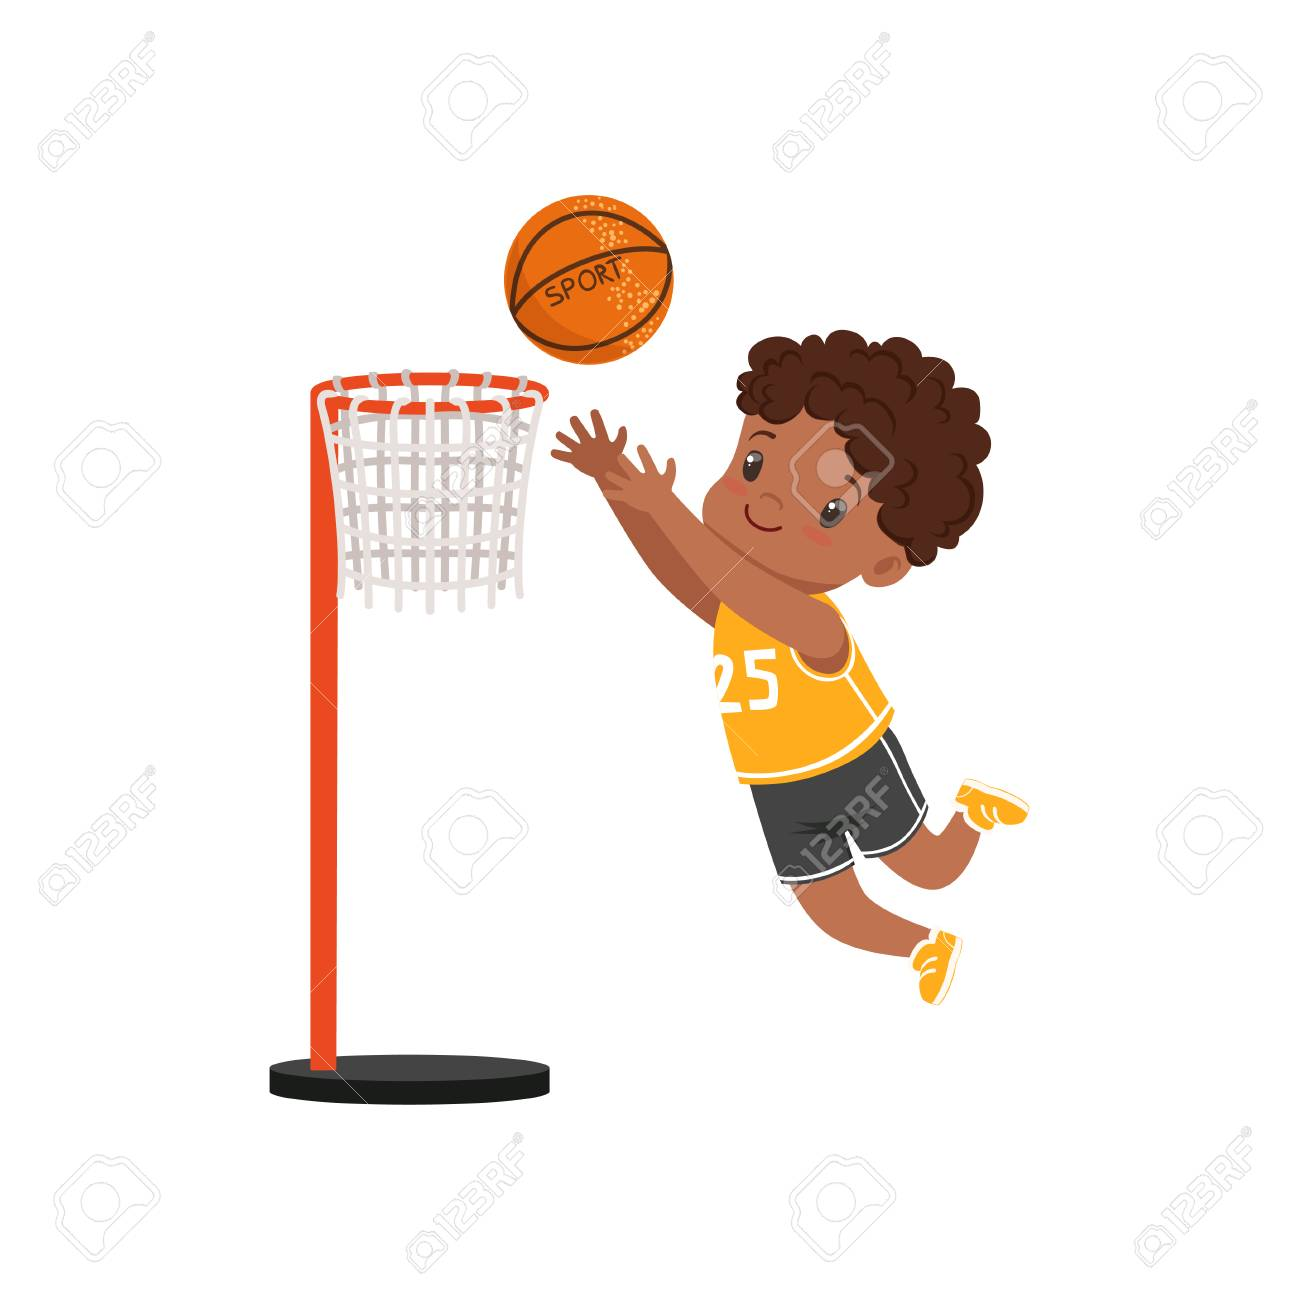 Child Throwing Ball Stock Illustrations – 292 Child Throwing Ball Stock  Illustrations, Vectors & Clipart - Dreamstime